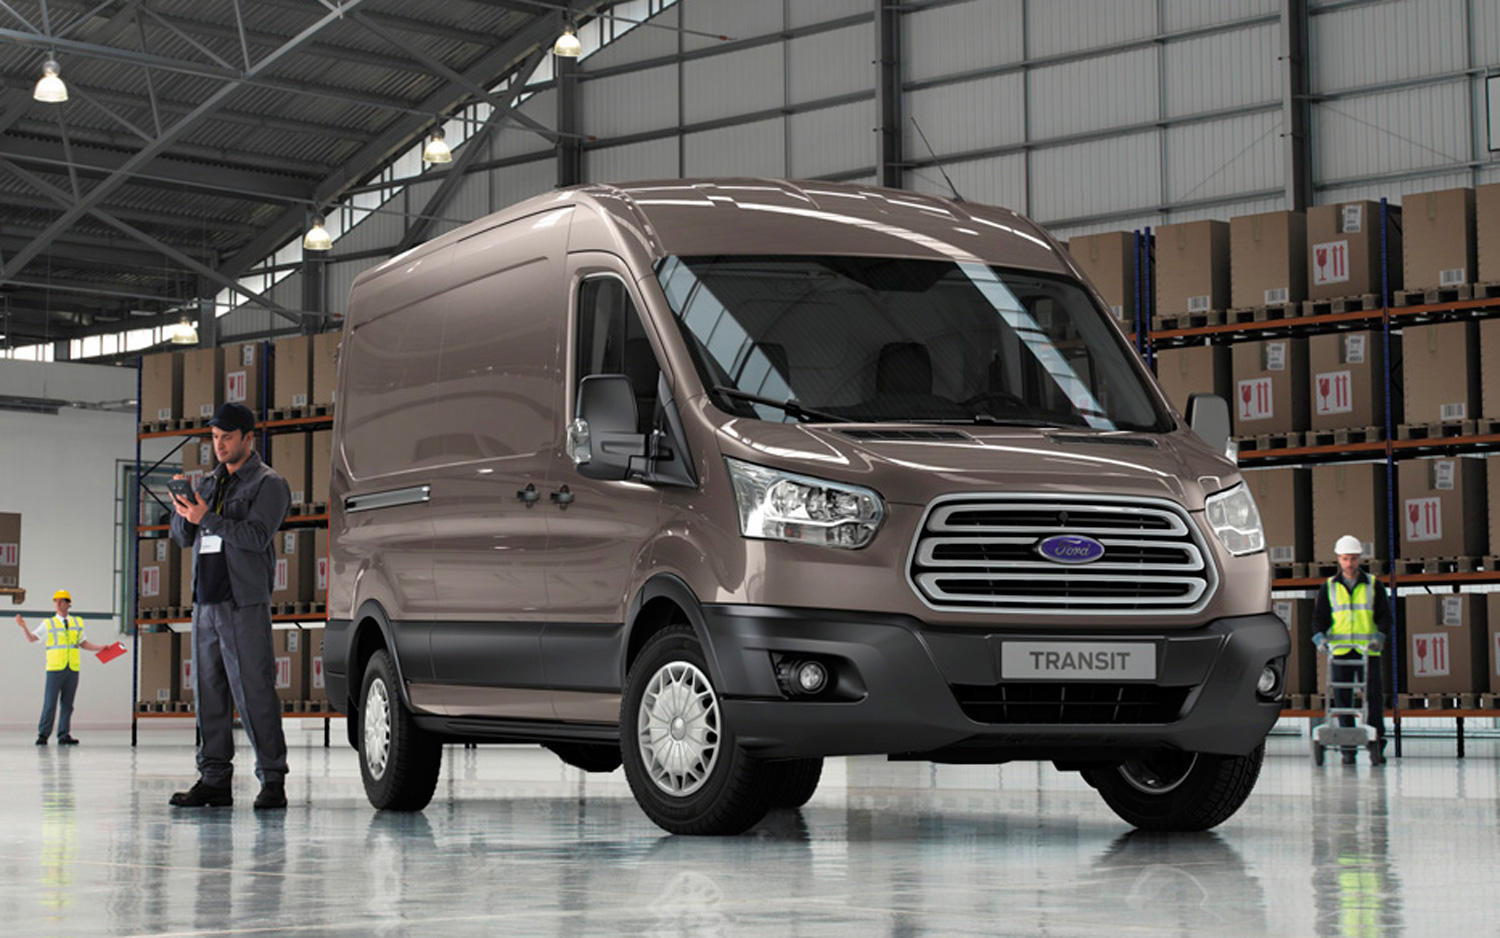 ford transit transit connect vans teased before u s launch [ 1500 x 938 Pixel ]